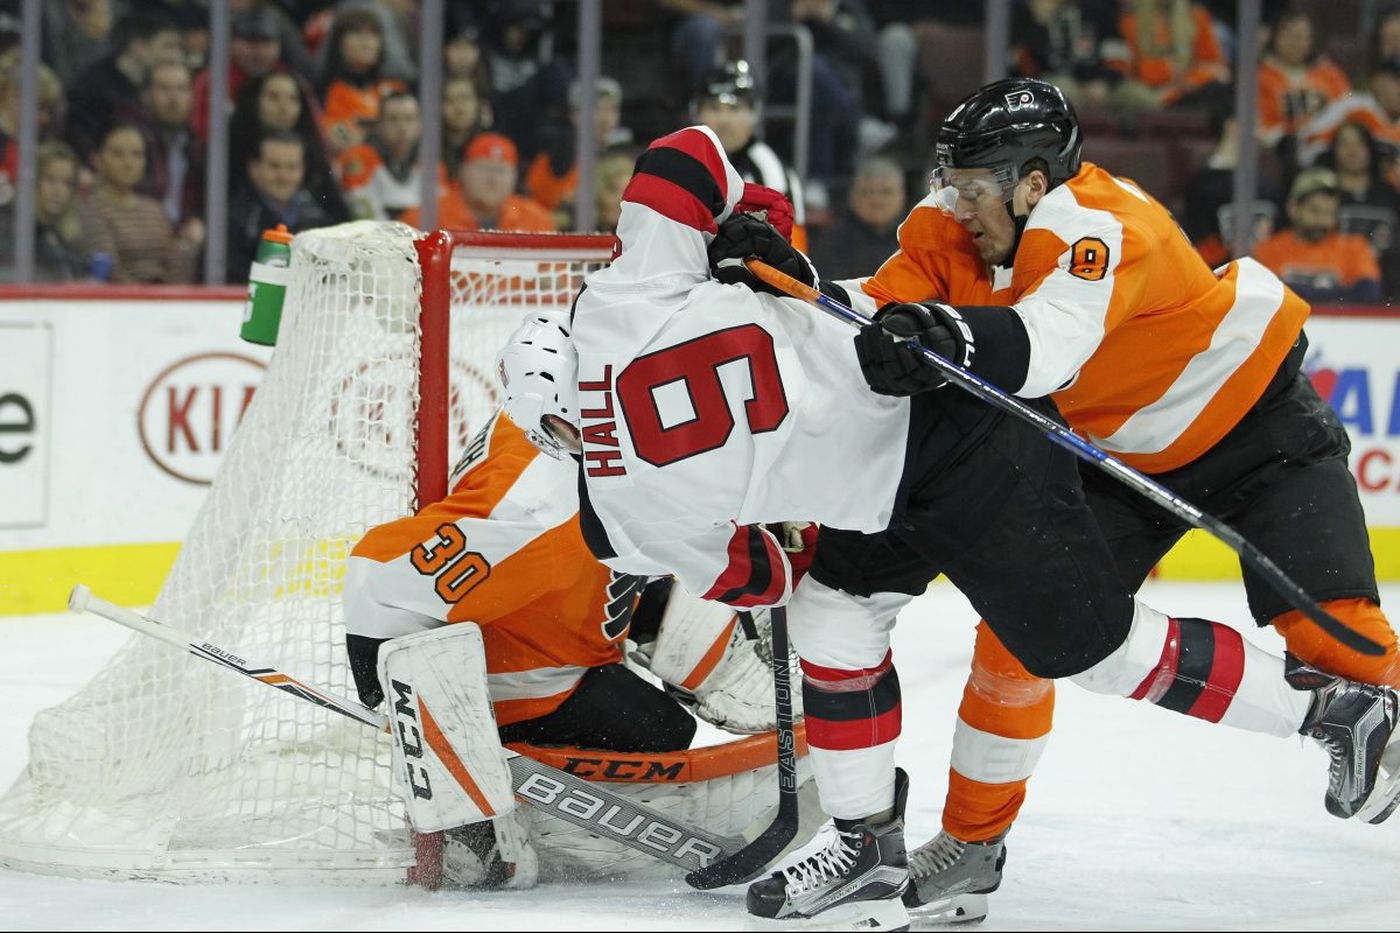 Flyers let one slip in shootout loss to Devils